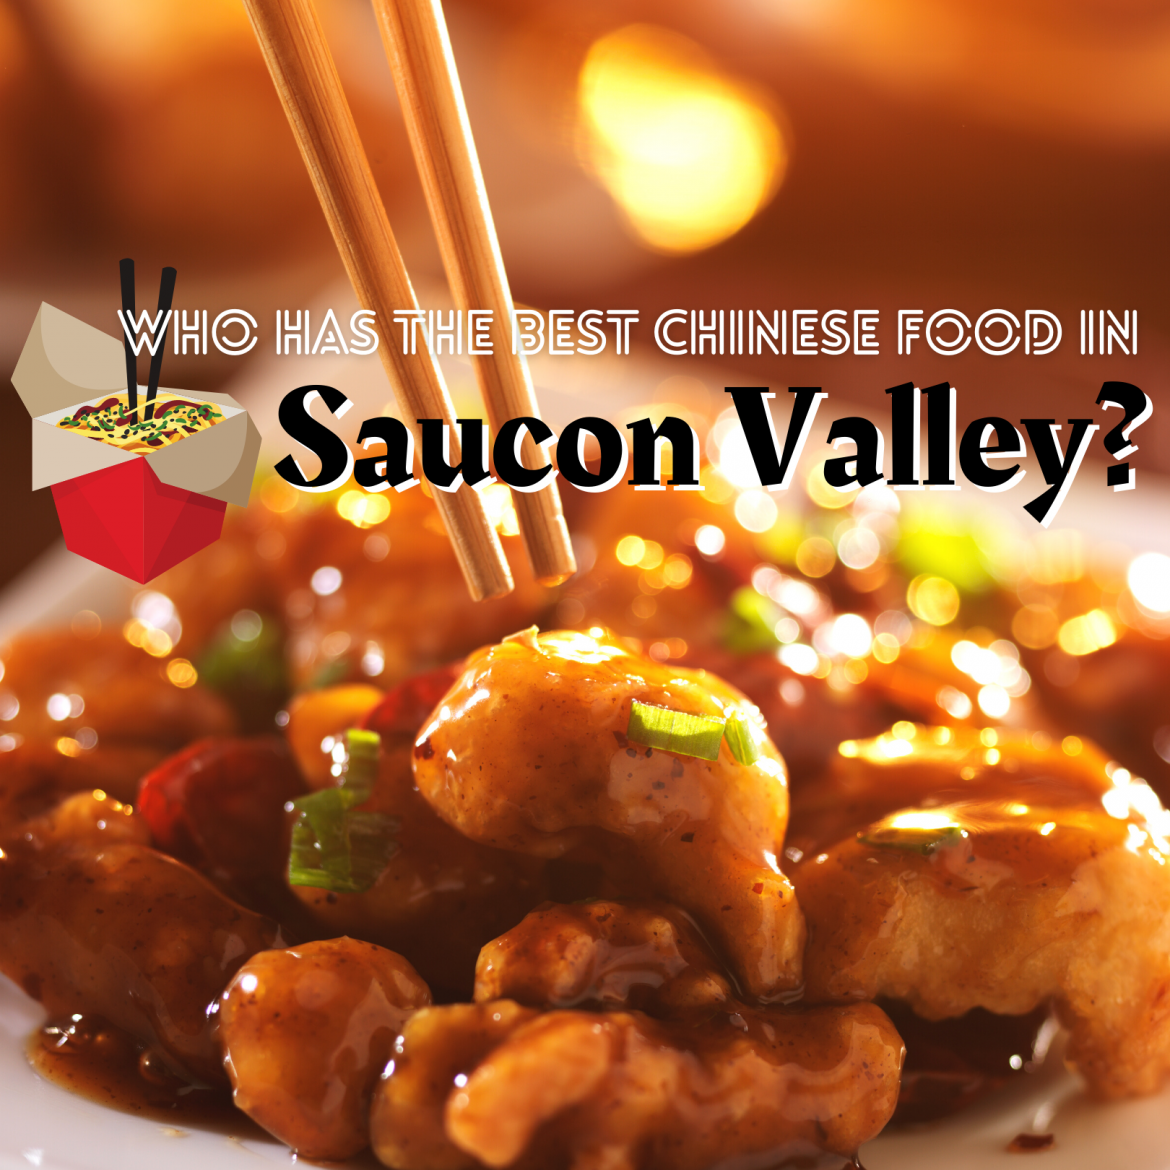 Best Chinese Food Saucon